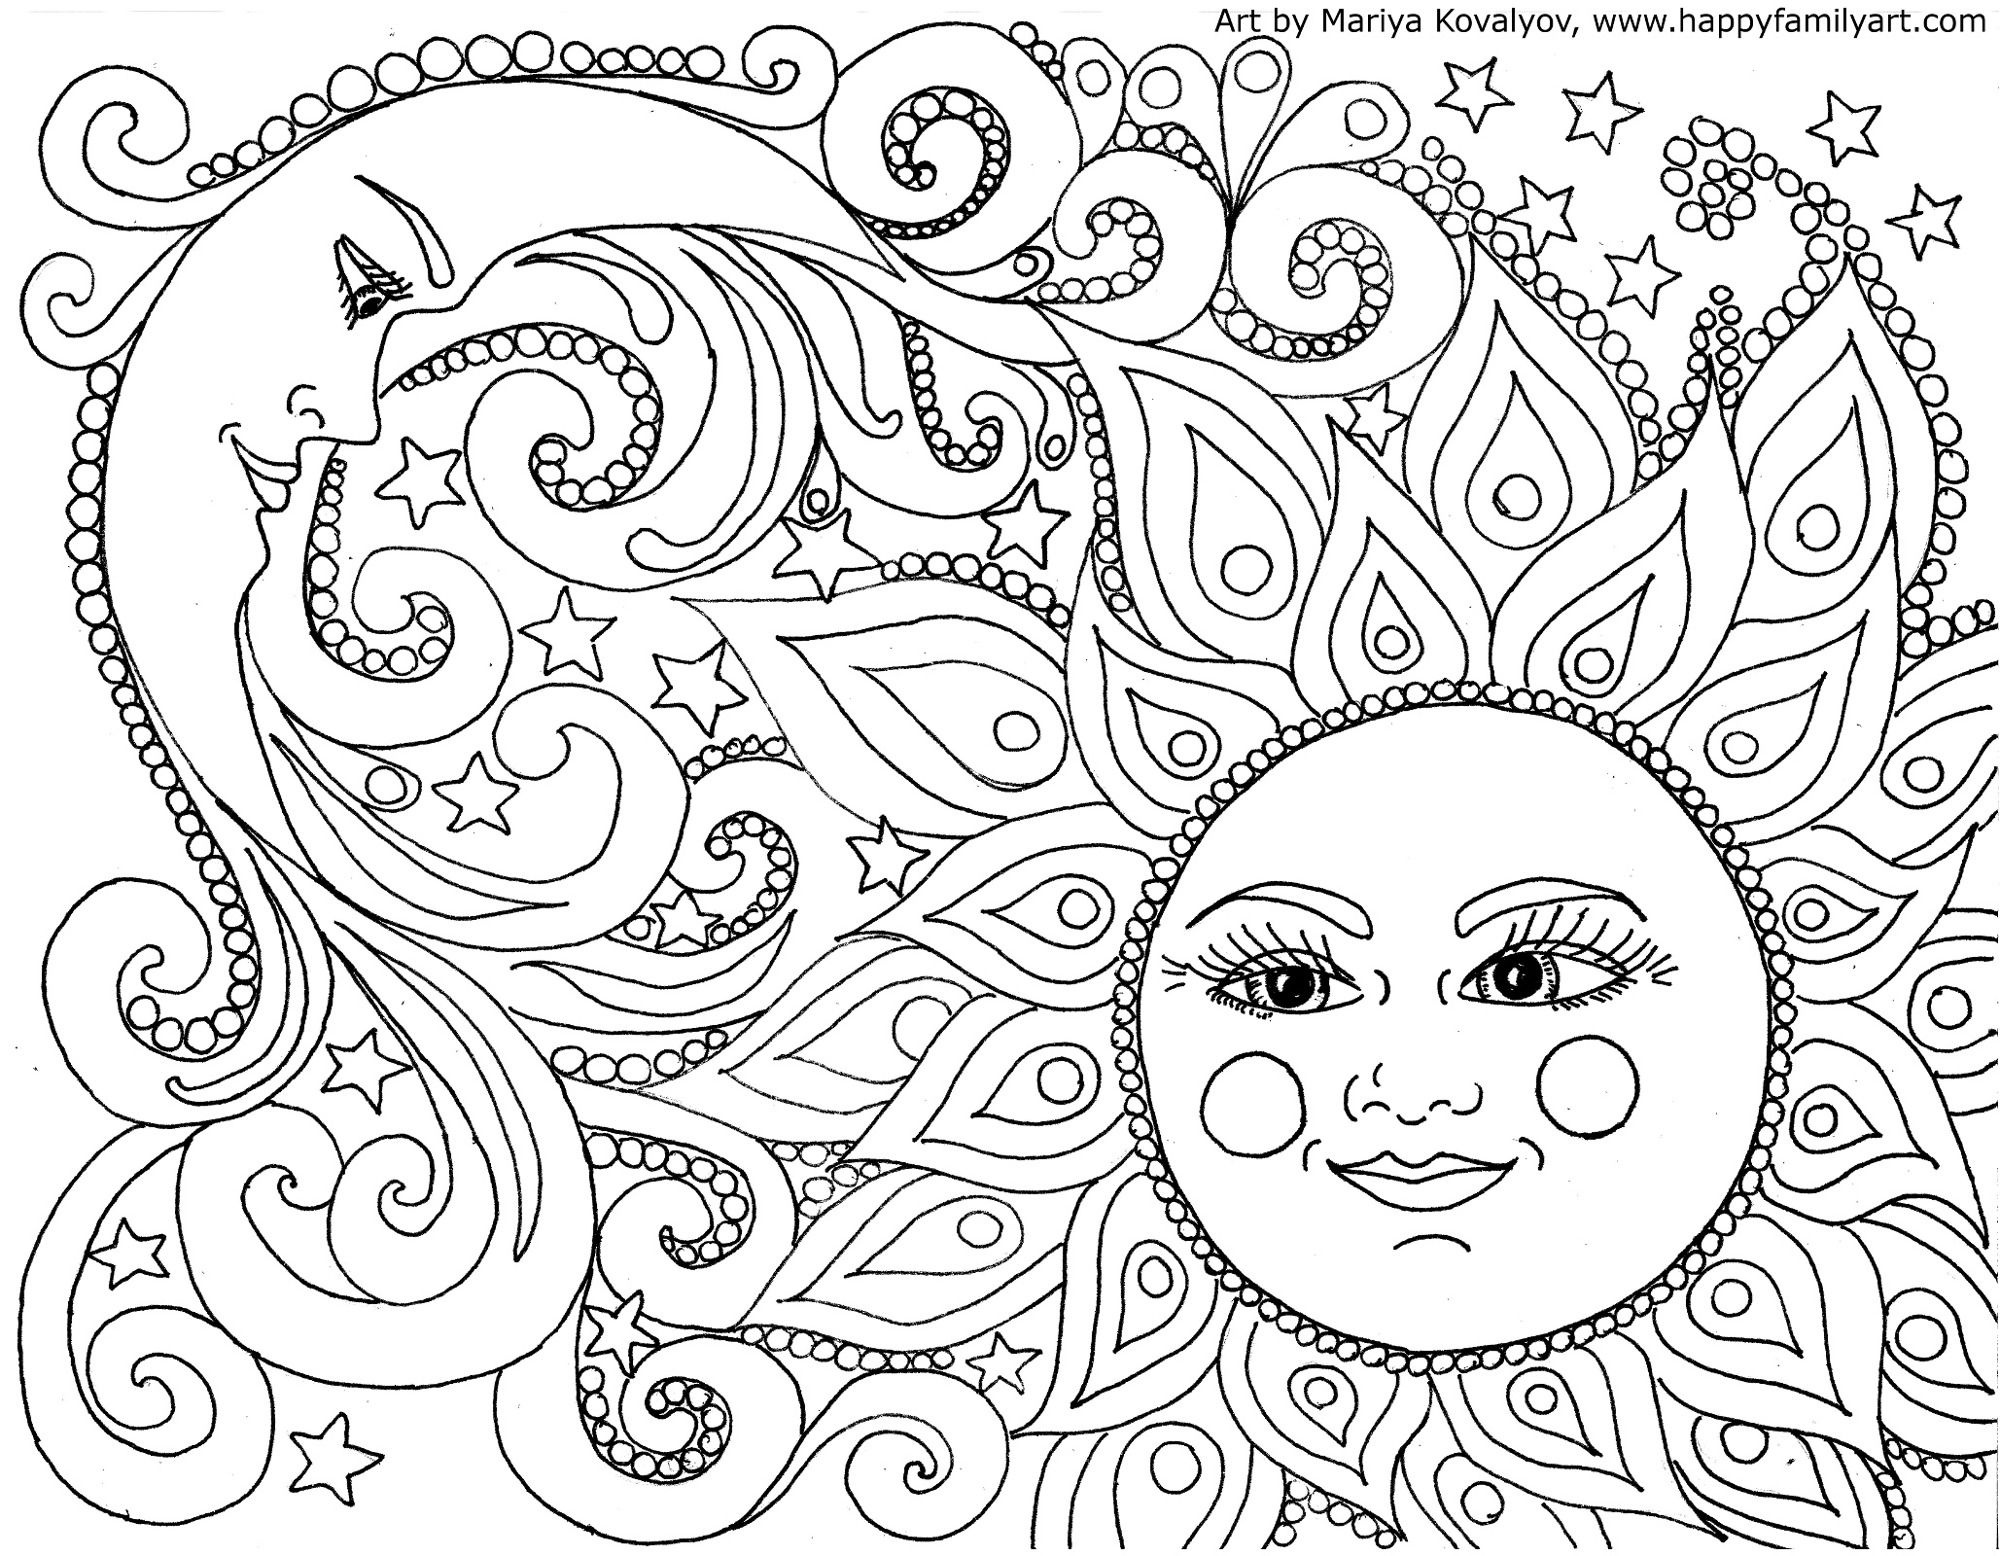 Free Cool Hippie Coloring Pages, Download Free Clip Art, Free Clip ... | 1556x2000